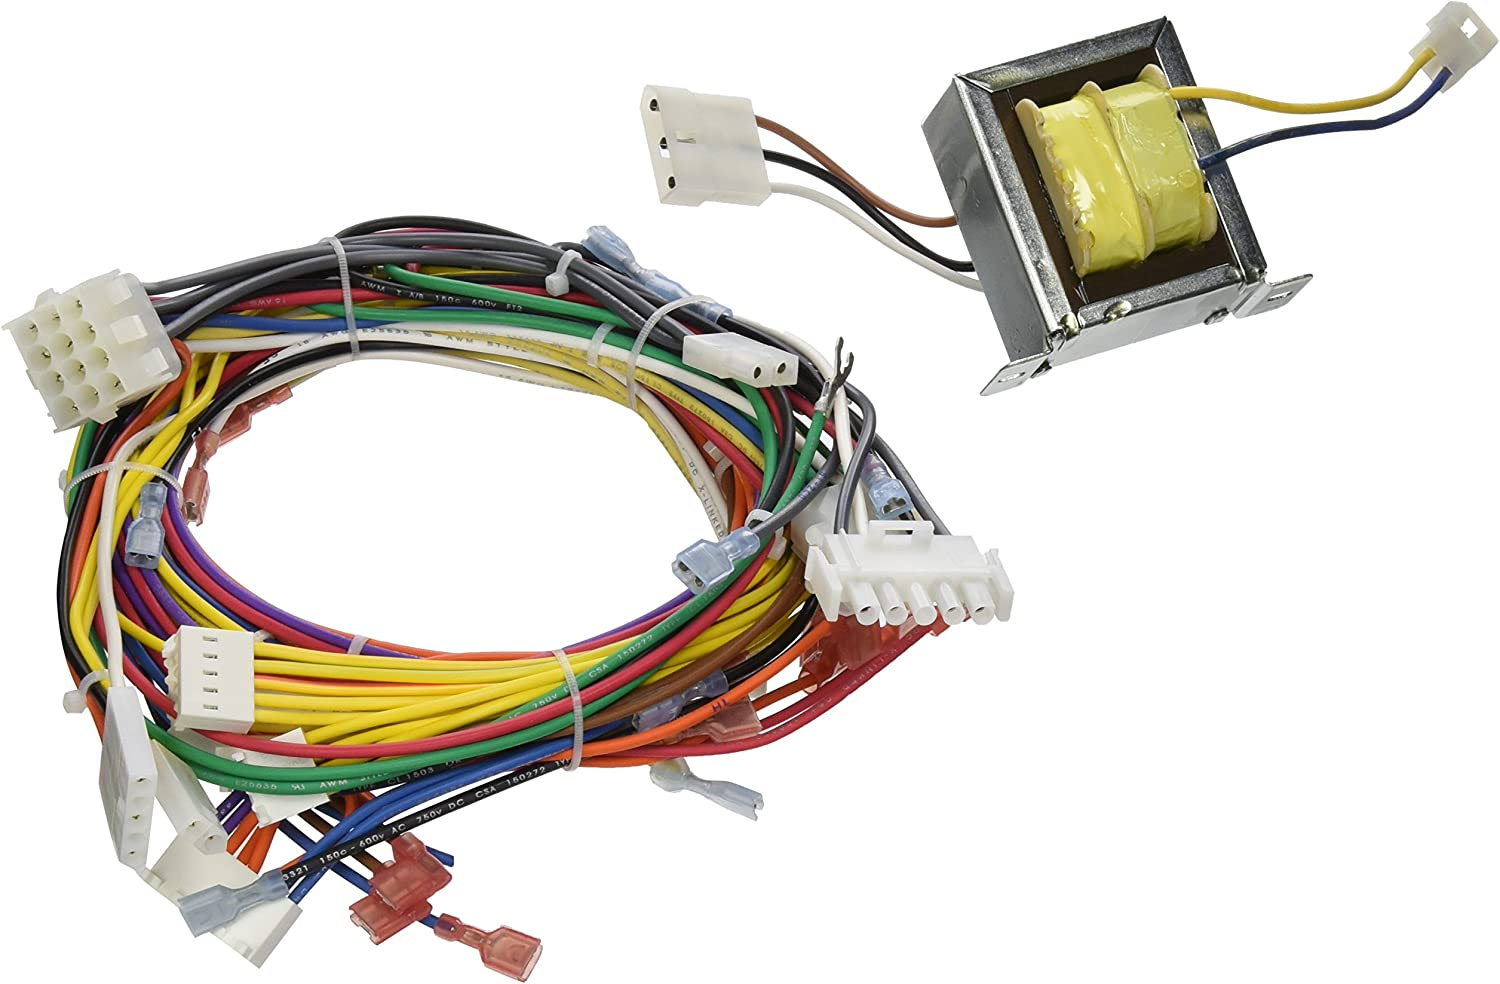 Amazon.com : Pentair 42001-0104S Heater Wiring Harness Replacement Pool and  Spa Heater Electrical Systems : Outdoor Spas : Garden & OutdoorAmazon.com